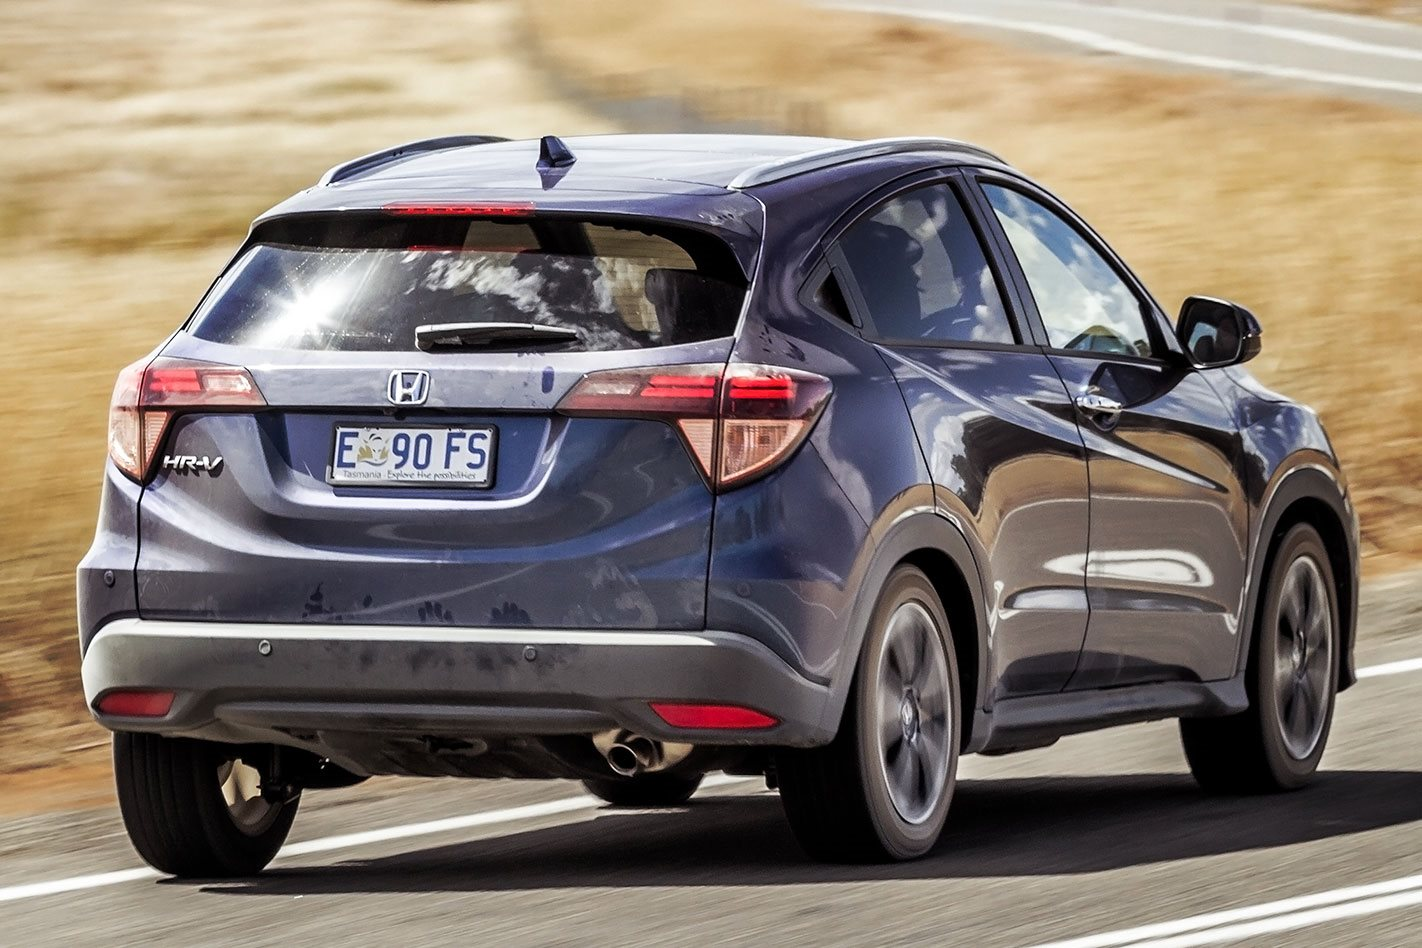 Honda Hrv Avis Honda Hr V 2019 Review Price Features Australia